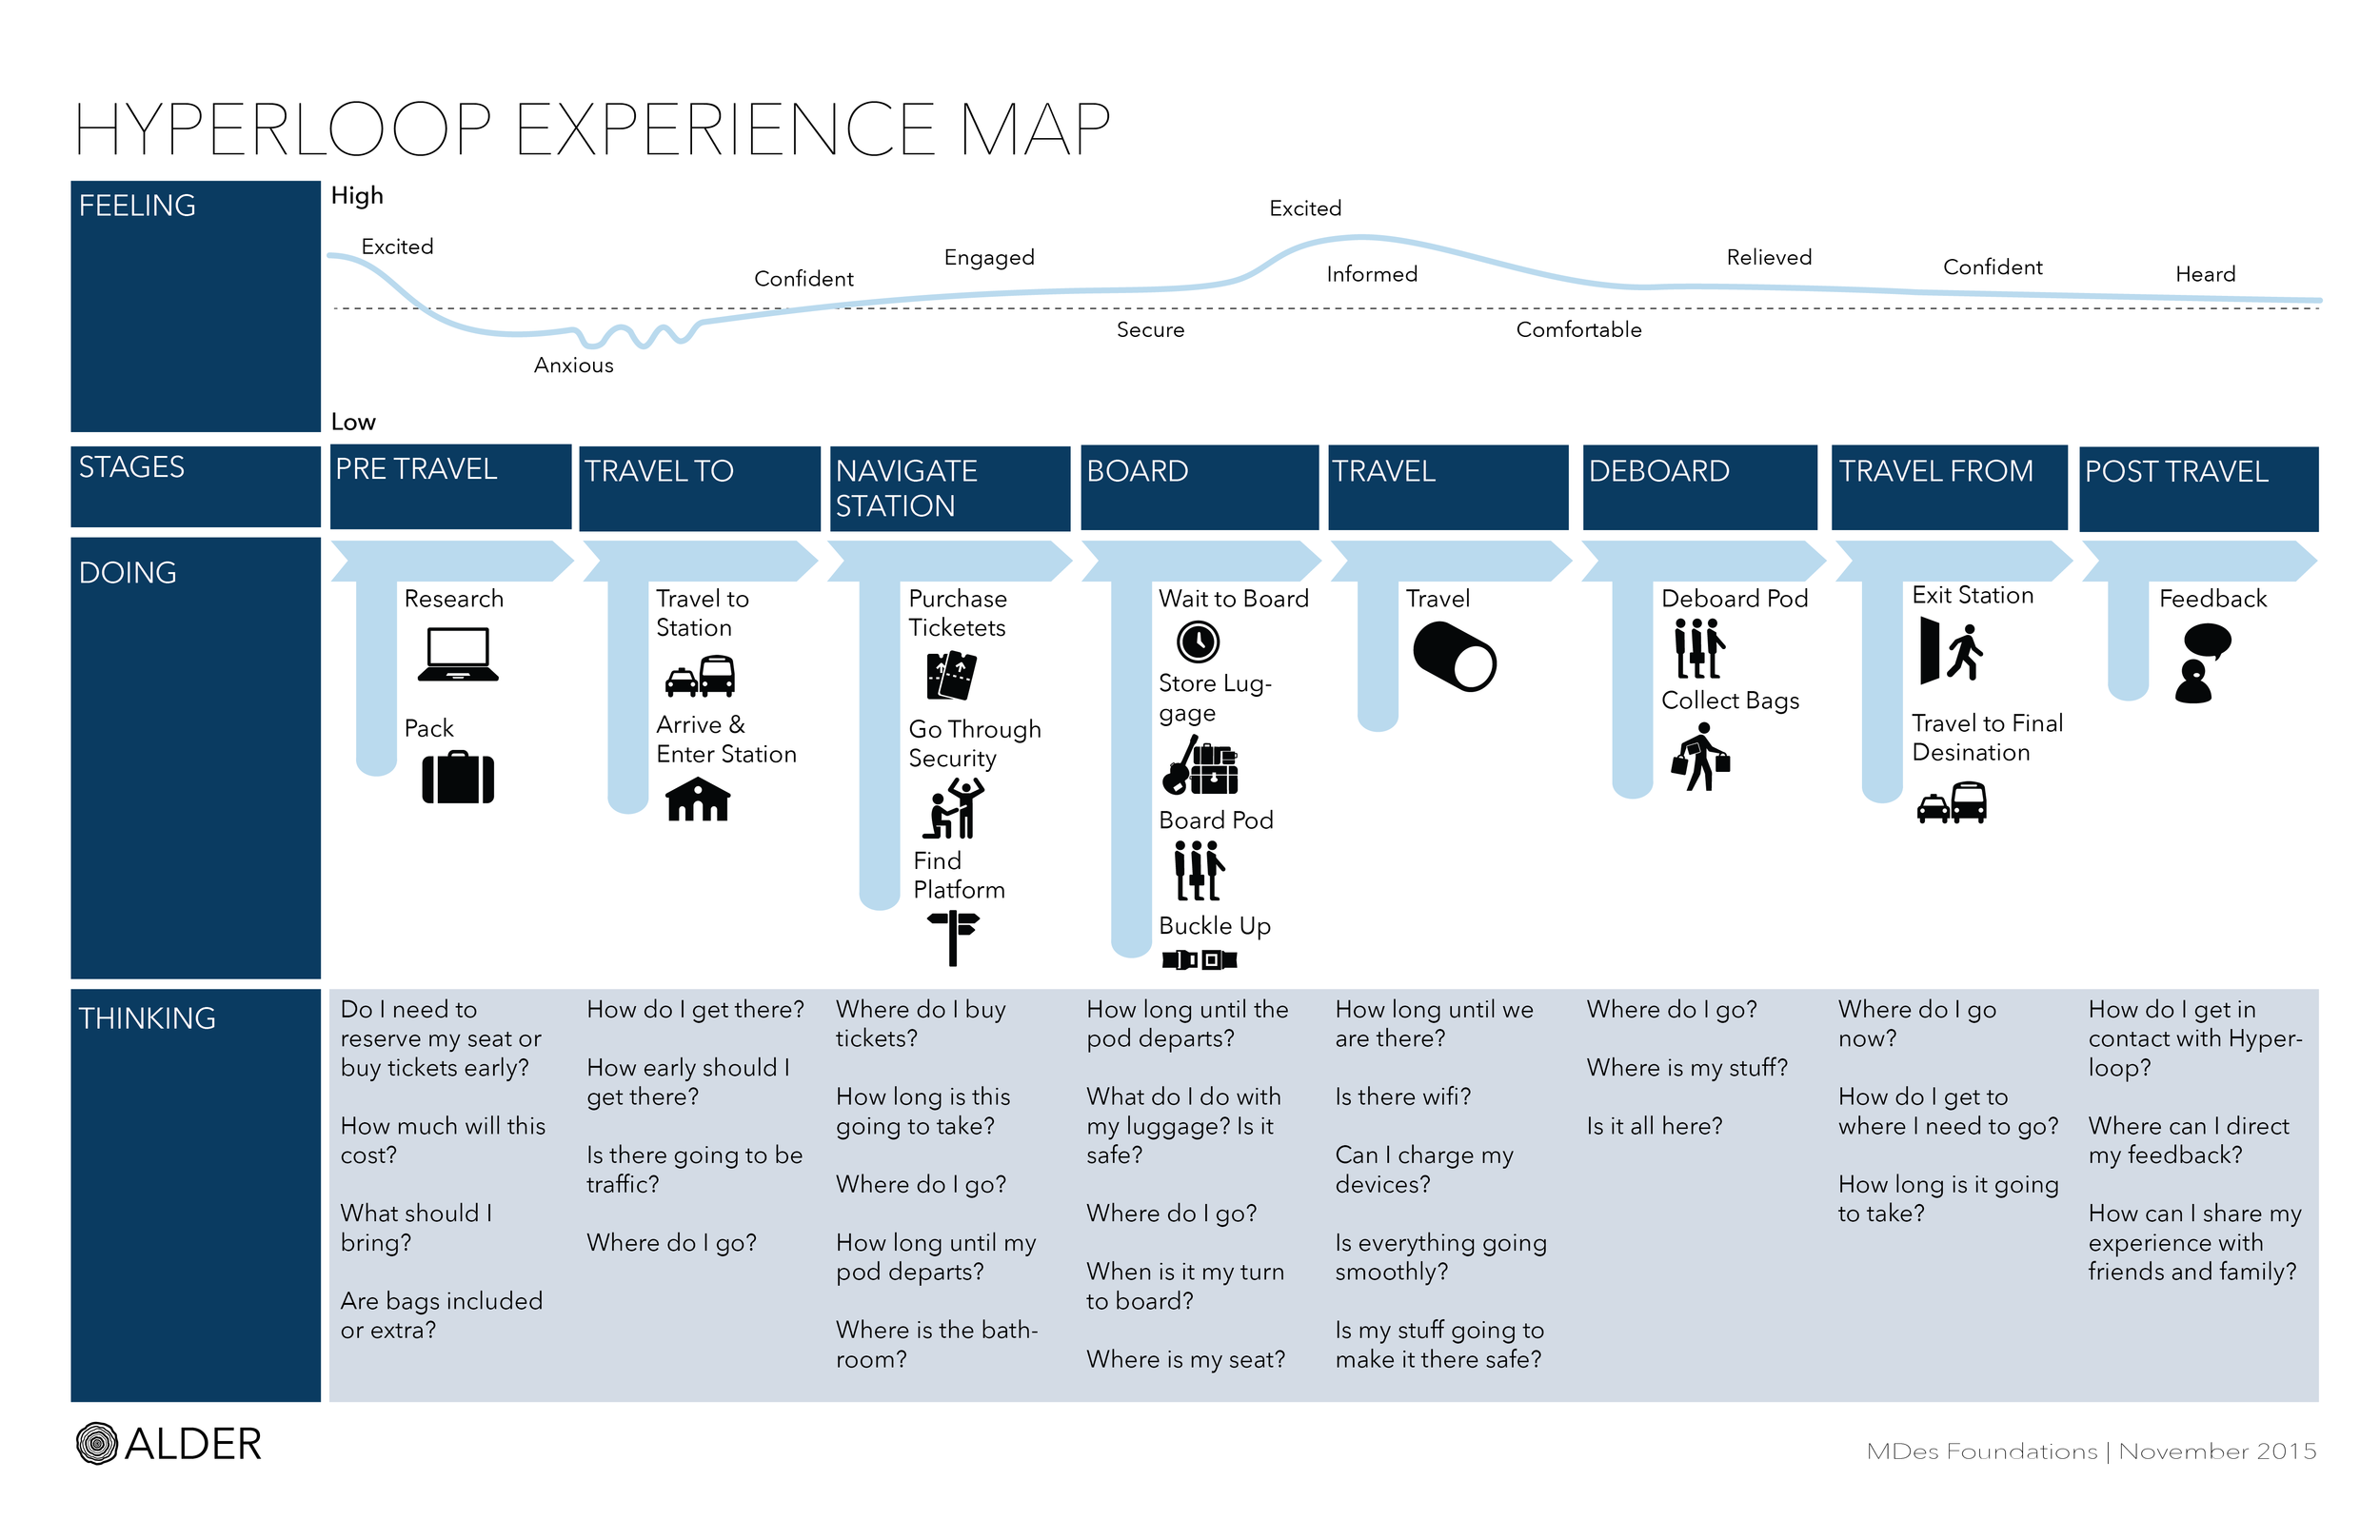 EXPERIENCE MAP:  This map illustrates the experience of a passenger using Hyperloop for the first time, and helped us to start thinking about the end to end journey and touch points passengers will interact with.